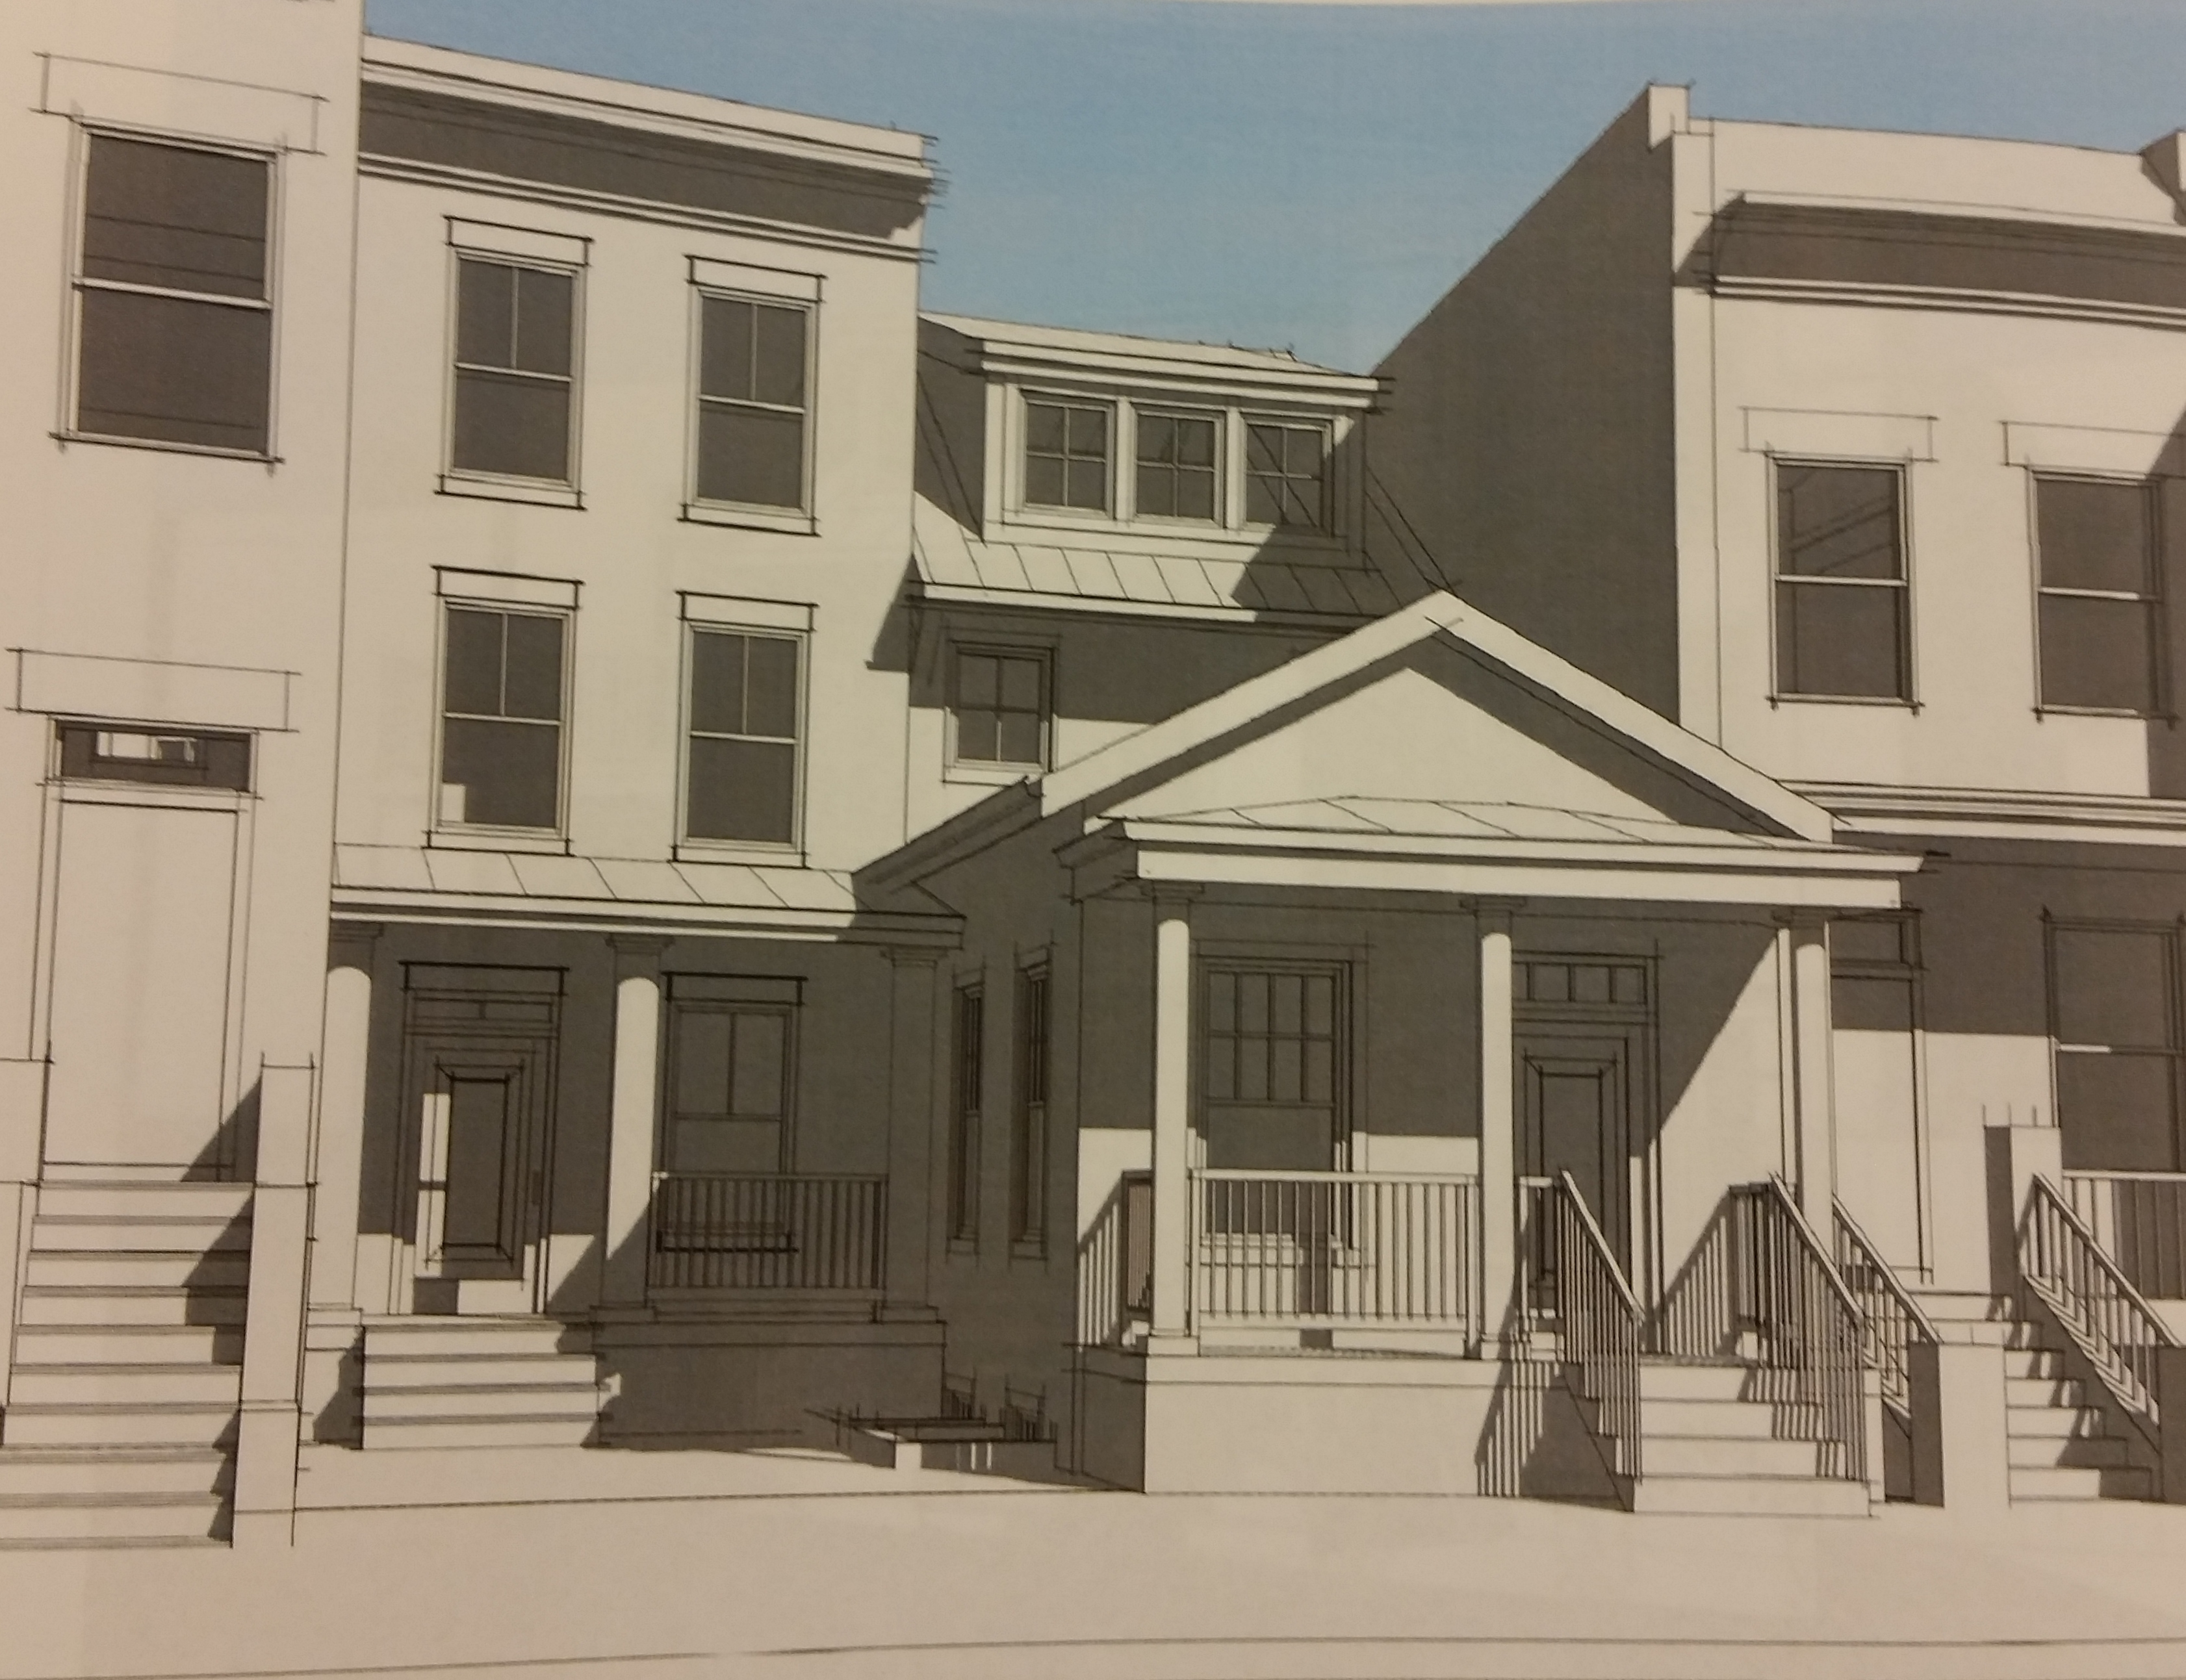 anc6b signs off on revised plan for preserving the shotgun house anc6b signs off on revised plan for preserving the shotgun house first look at new design